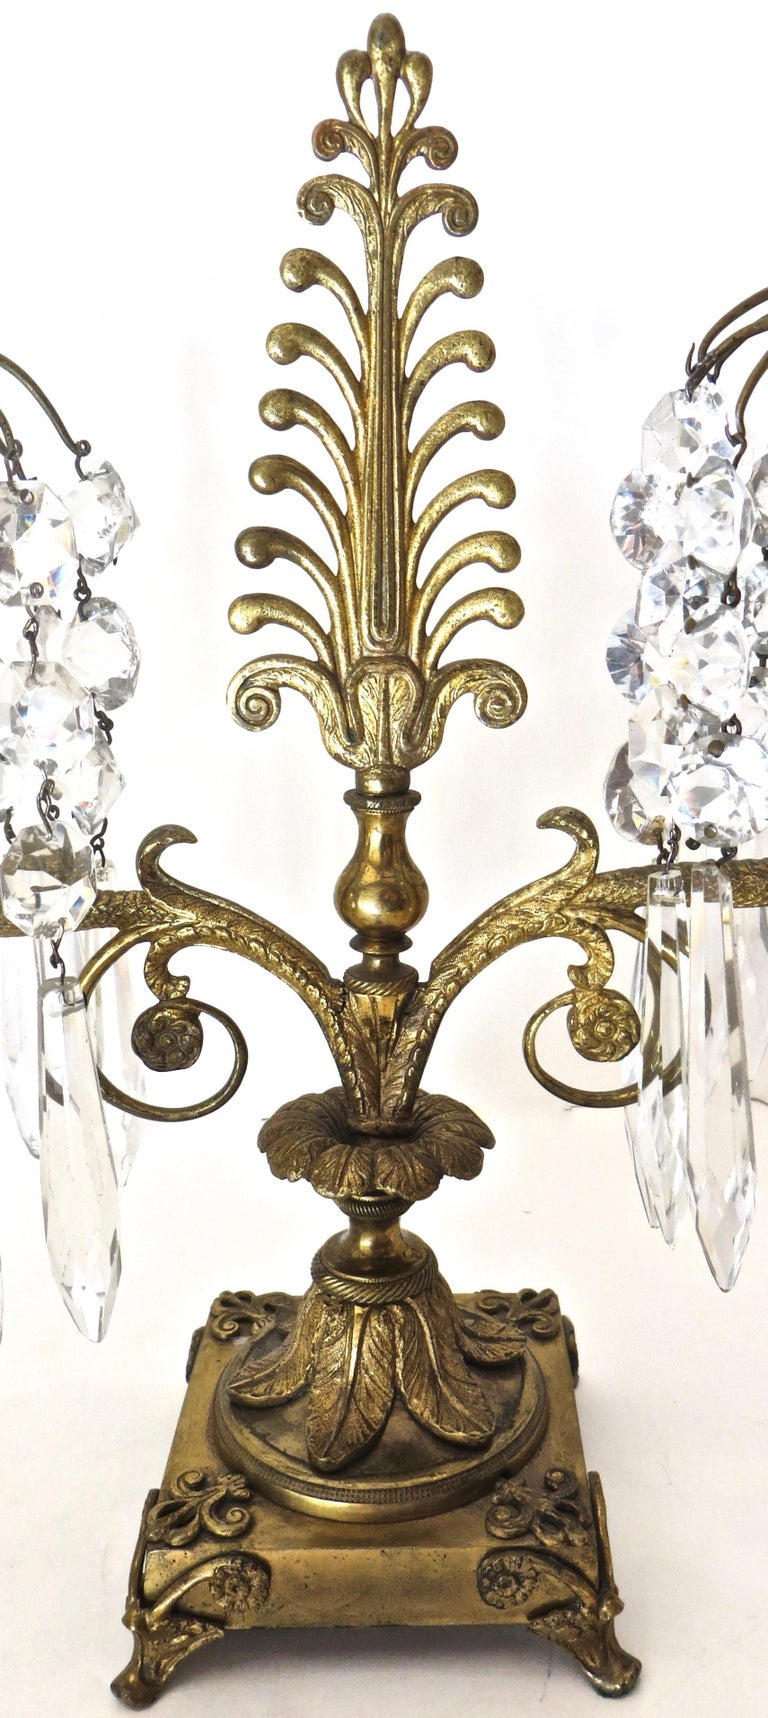 Pair of Regency Cut-Glass and Gilt-Metal Two Light Candelabras, circa 1815 For Sale 1